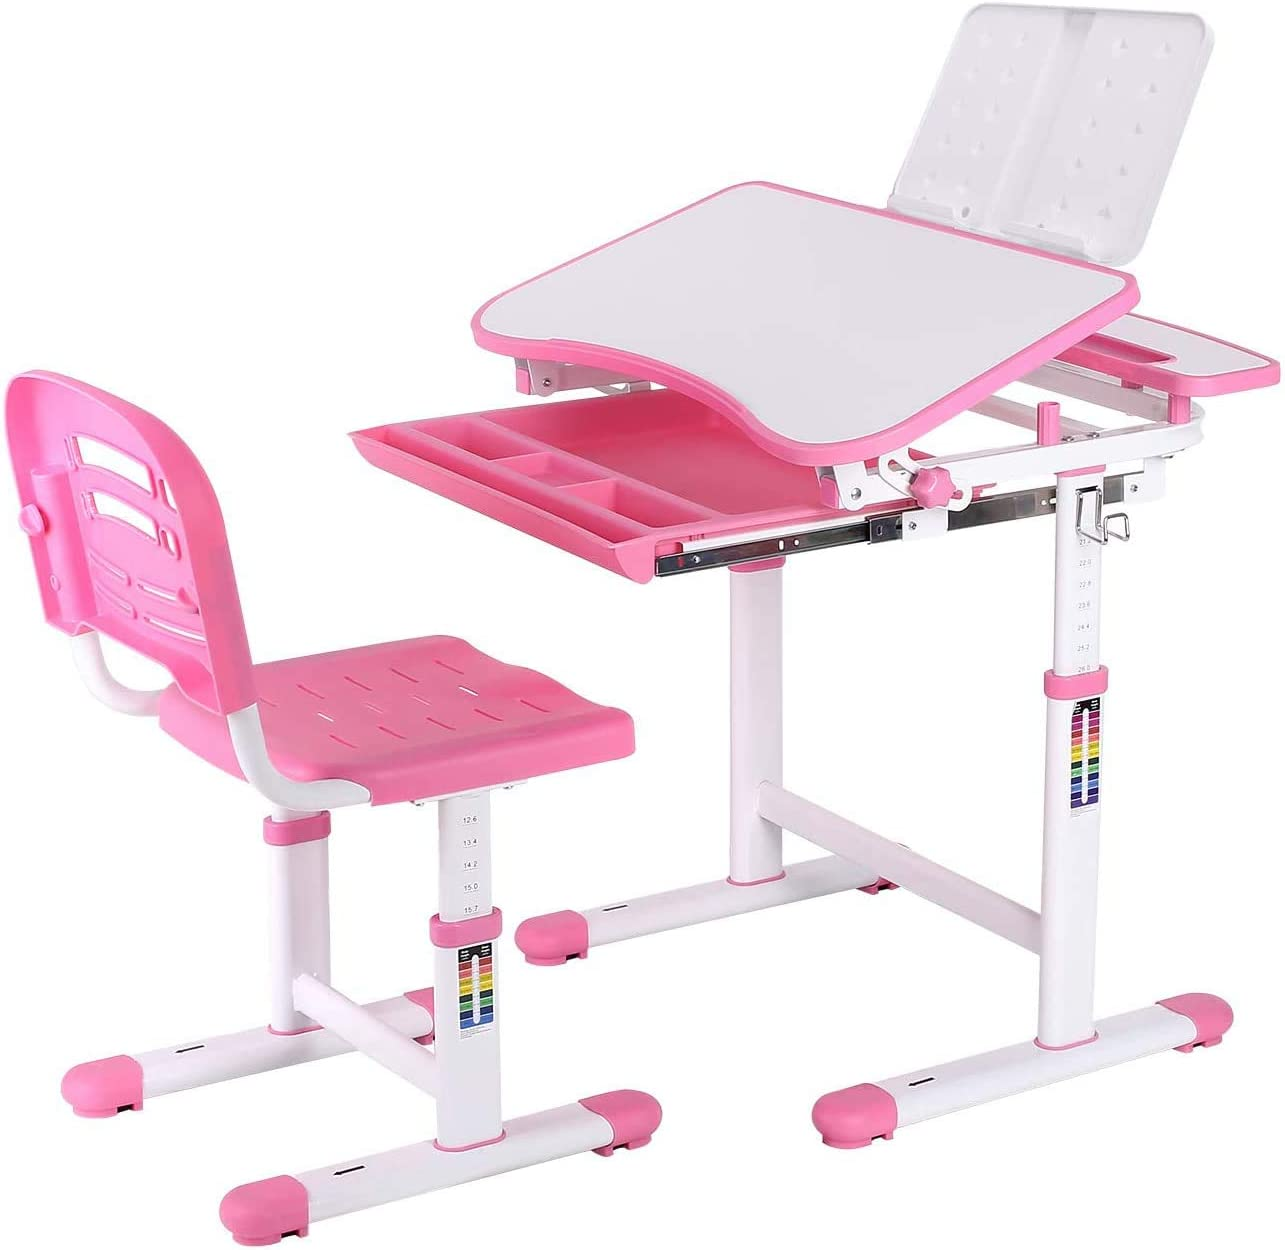 WeChip Kids Desk and Chair Set Shipped from USA